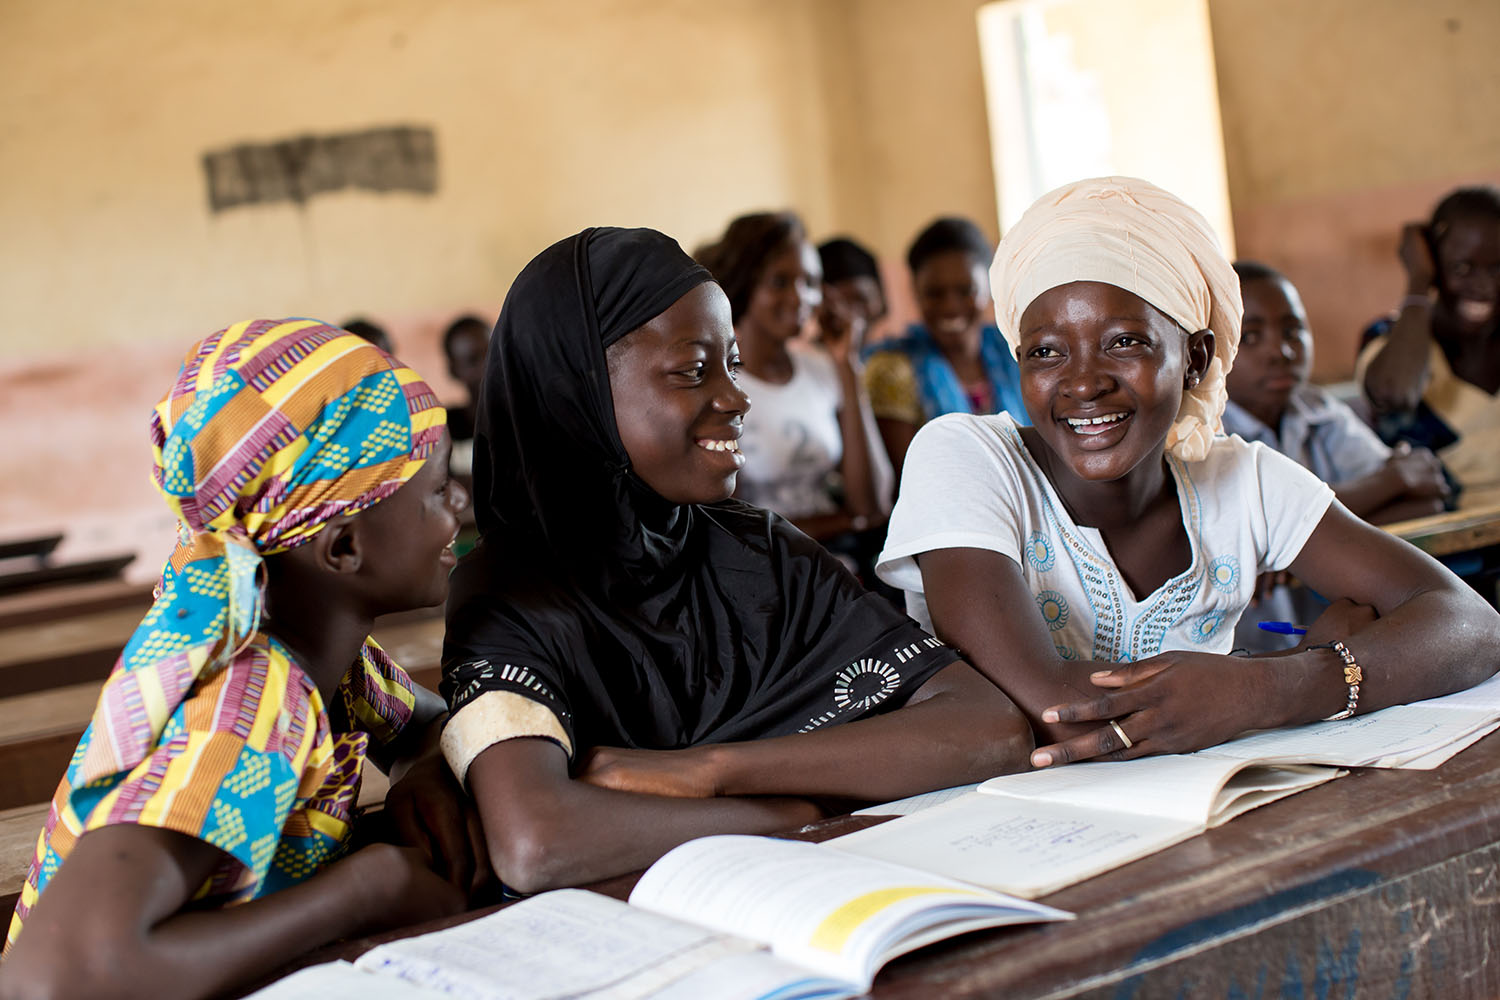 Abibatou Togola, 15 years (released) and her friends engage in a discussion during class at Koumantou Secondary School, Sikasso Mali. As UNICEF's focus on educating the girl child in Mali continues, one would hope that these young girls are at least giv